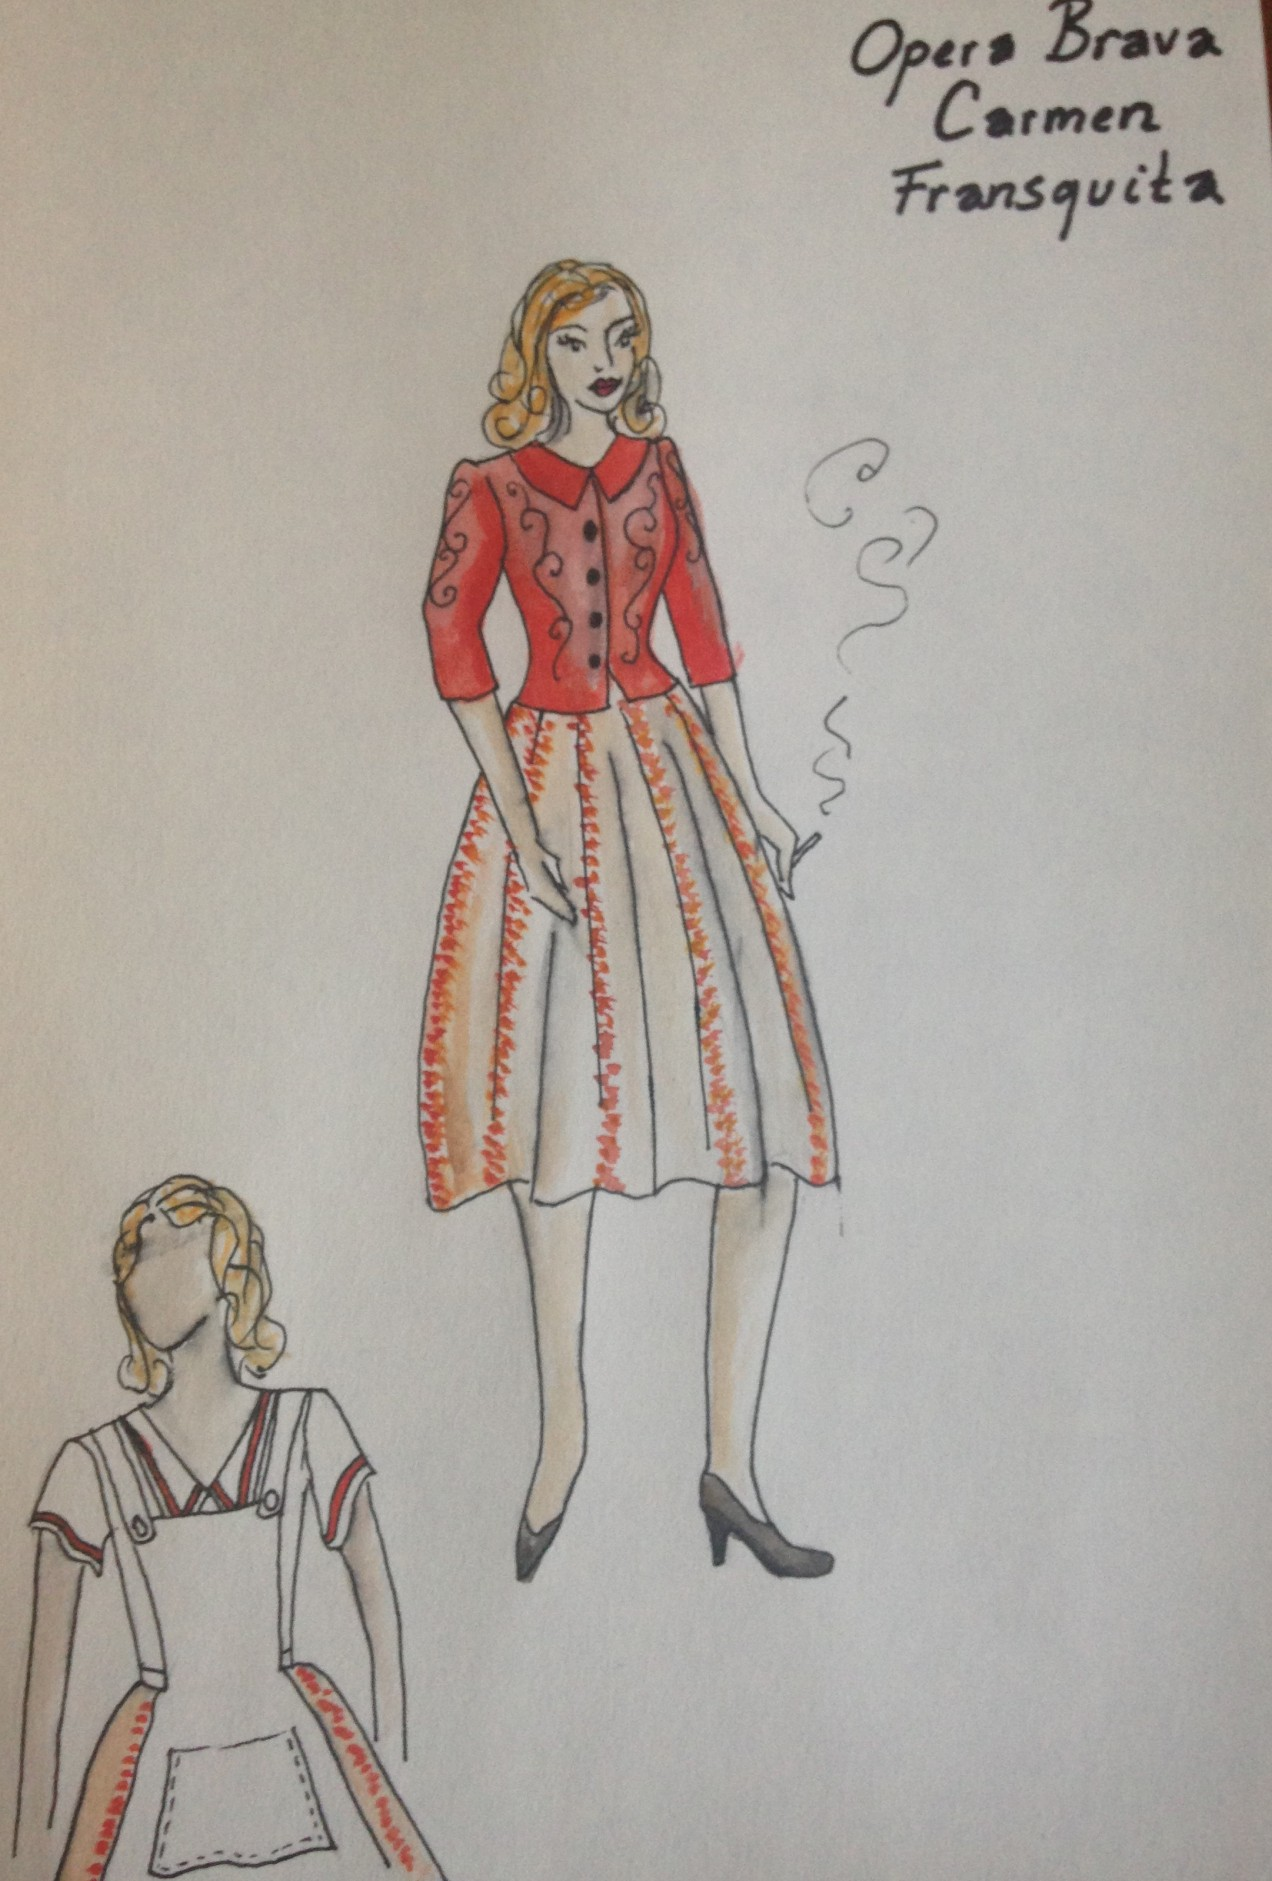 Design for Opera Brava's Carmen